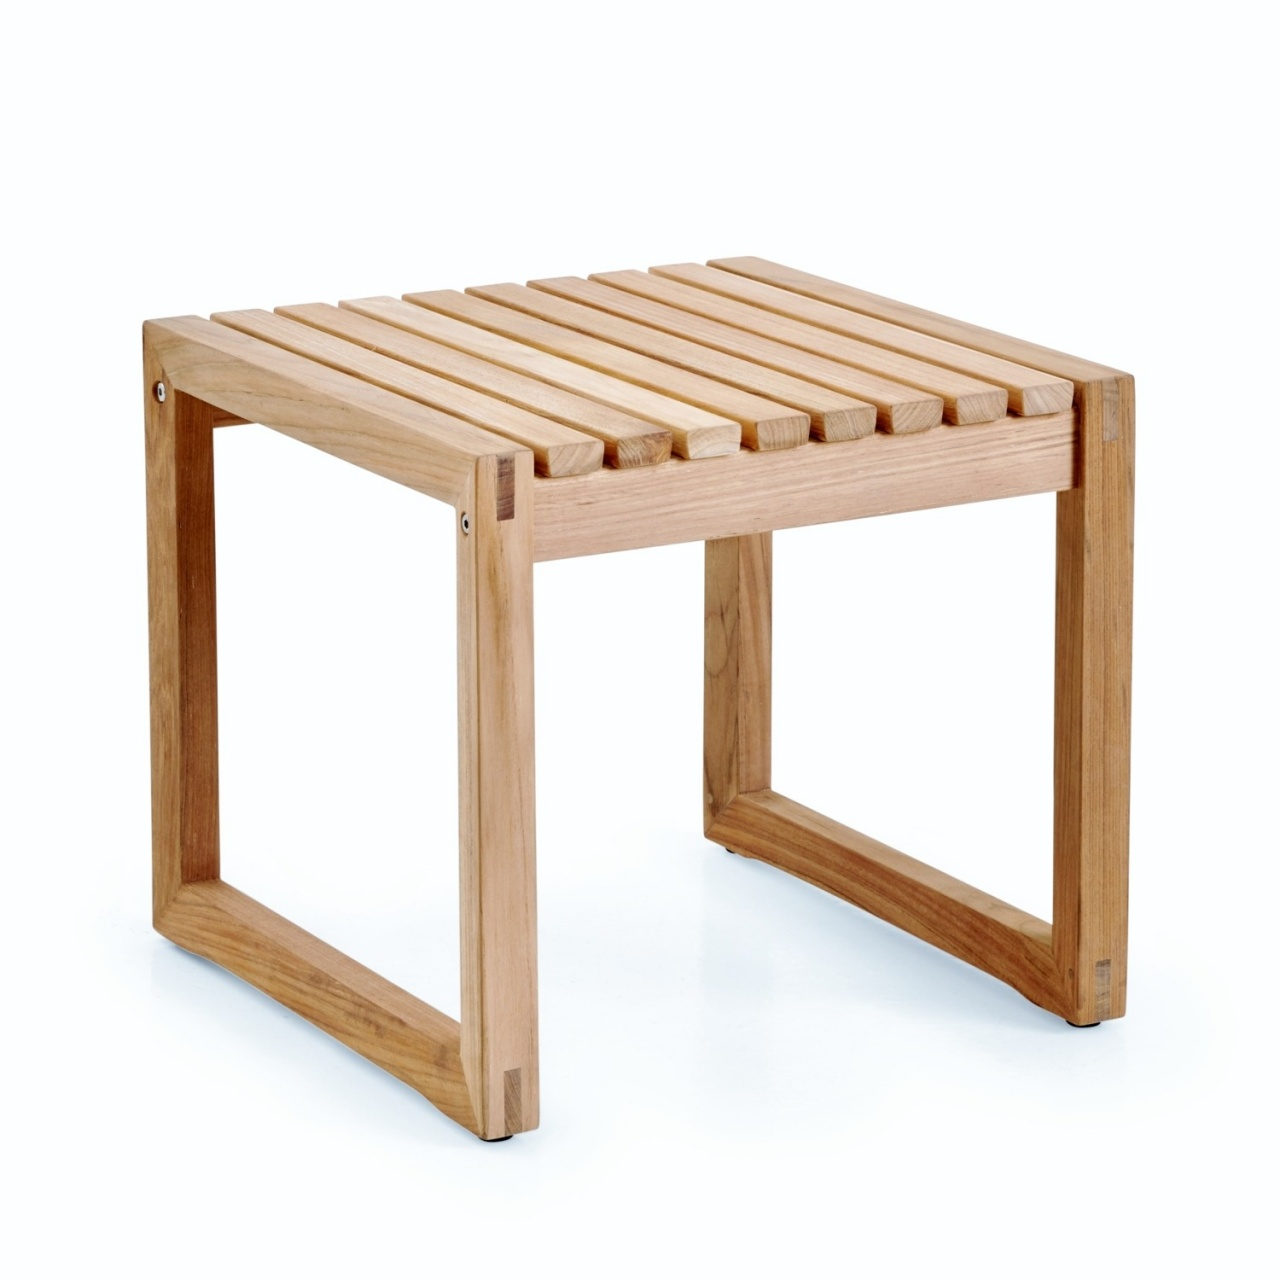 teak wood outdoor table brafab vevi teak gartenhocker gartenbeistelltisch from teak wood outdoor table